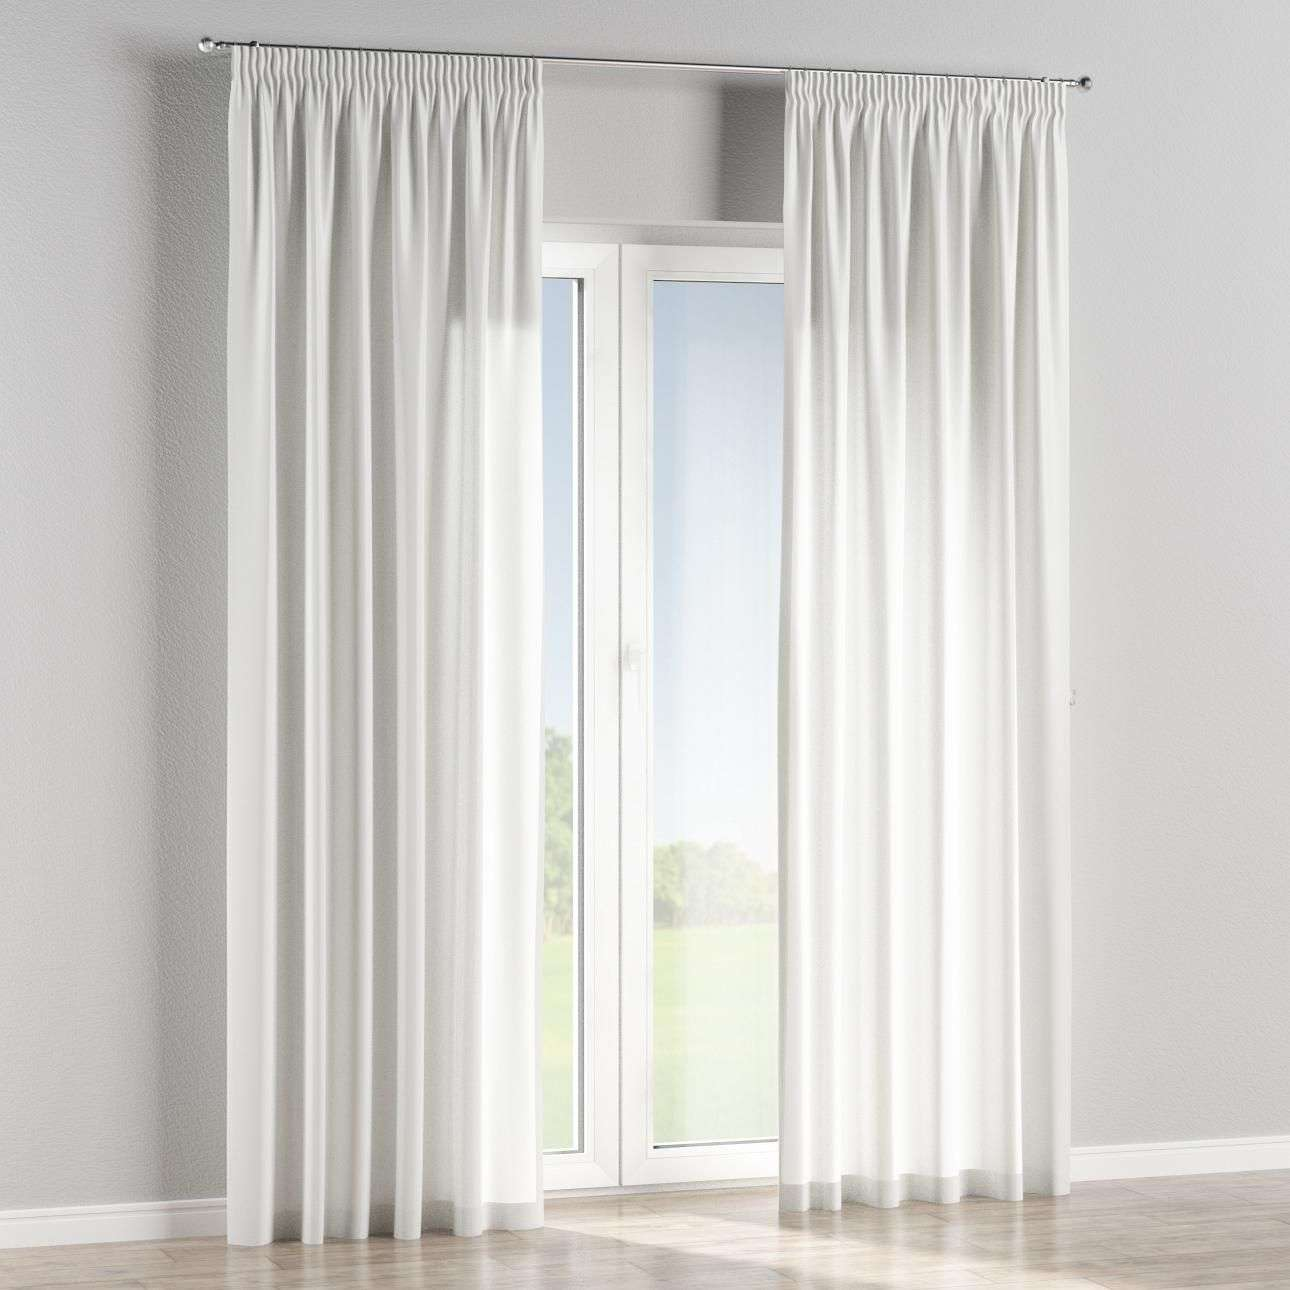 Pencil pleat lined curtains in collection New Art, fabric: 140-21